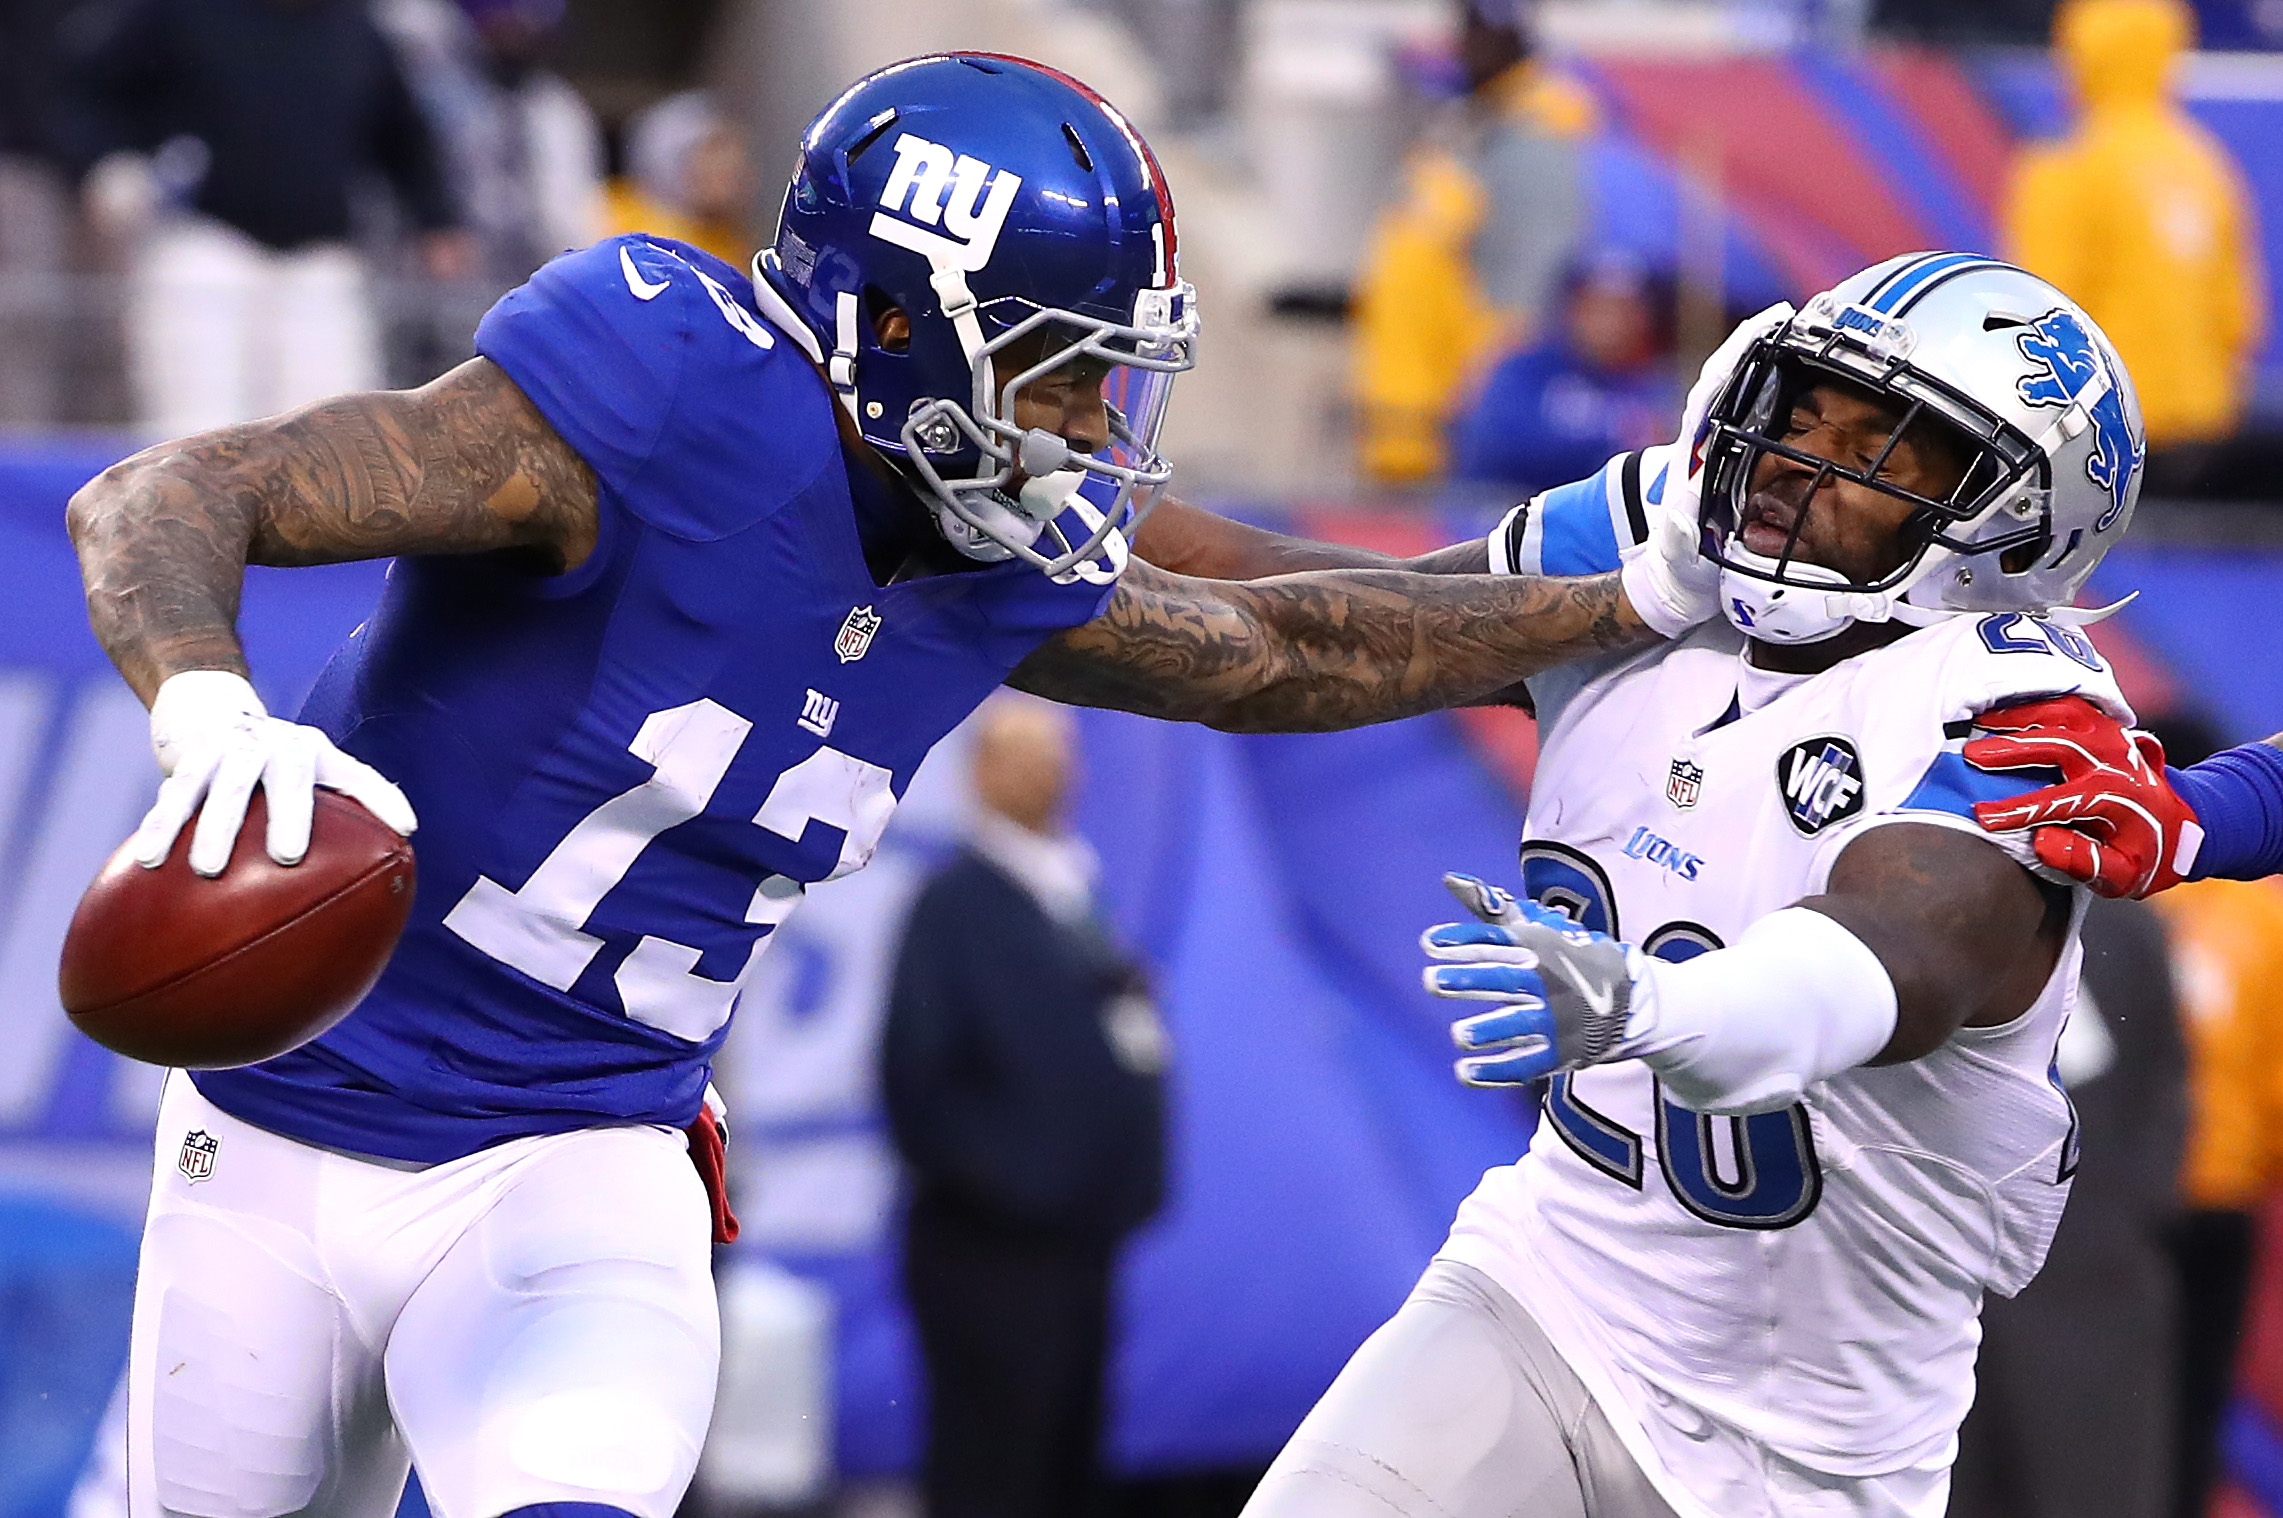 New York Giants: Odell Beckham Jr. is growing up